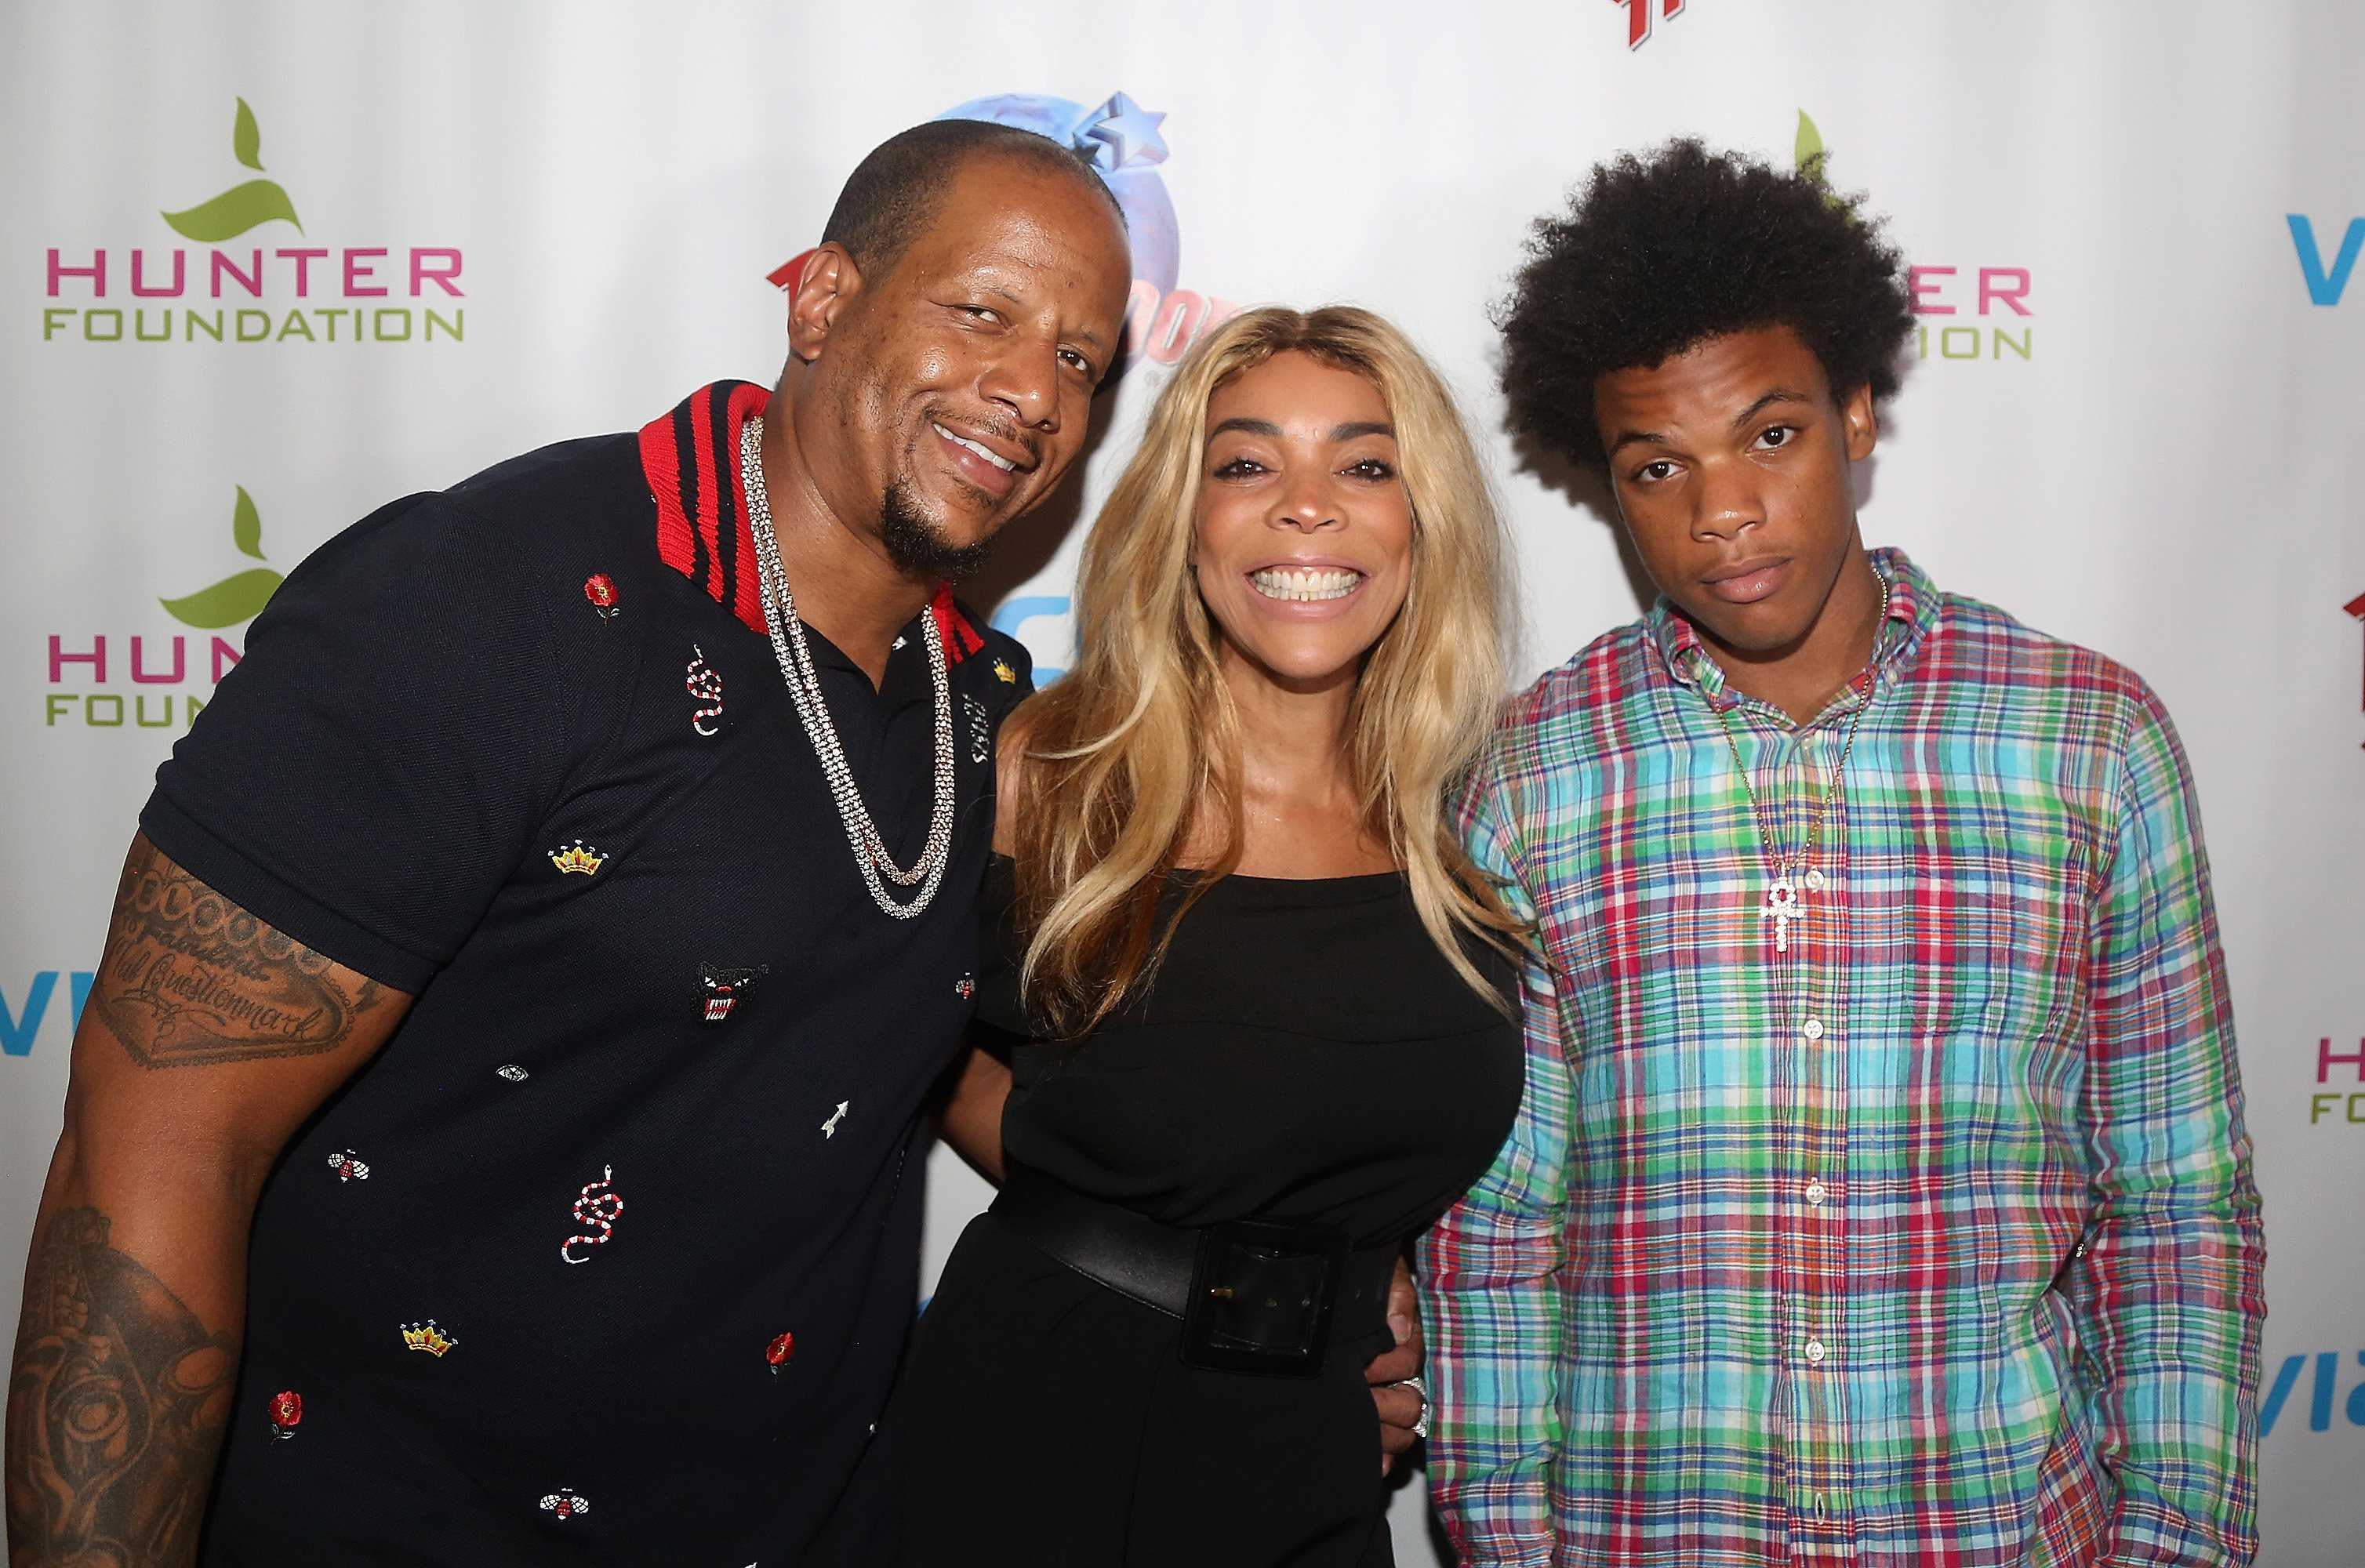 Kevin Hunter, wife Wendy Williams and son Kevin Hunter Jr at a celebration for the Hunter Foundation Charity in July 2017. | Photo: Getty Images